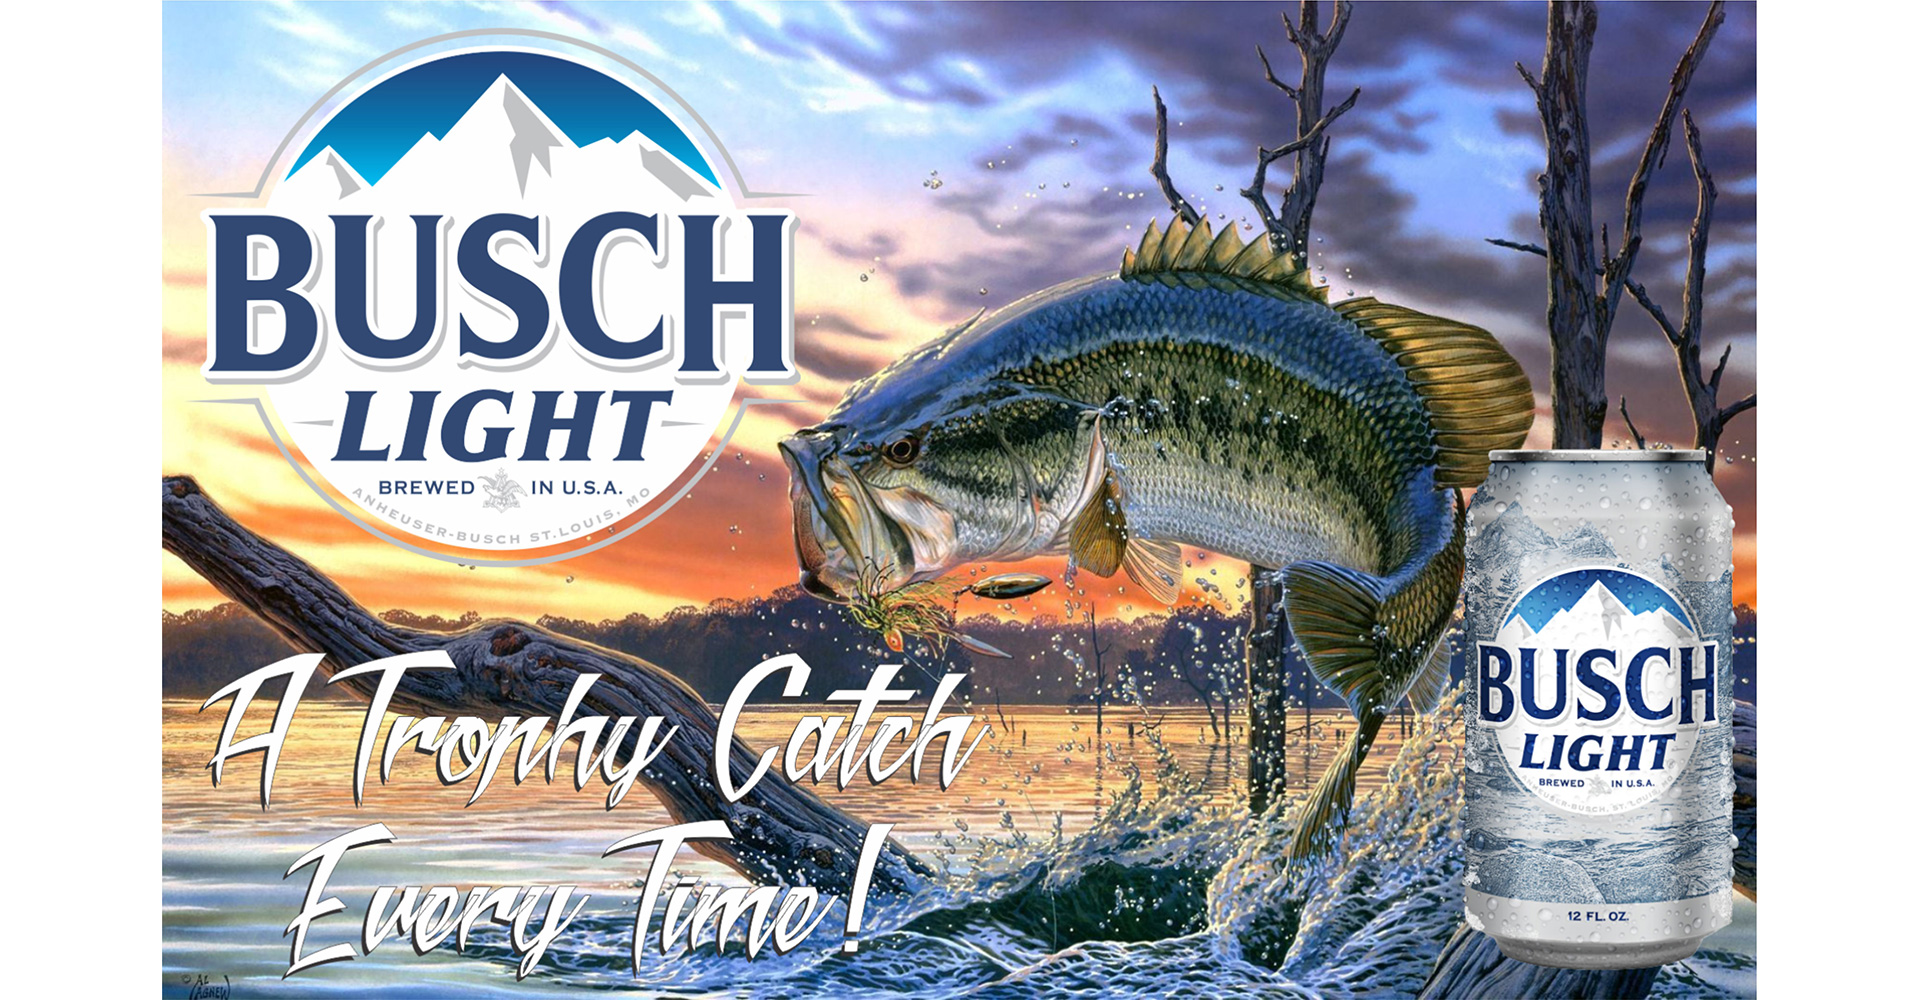 Busch-Lt-Fishing-2017